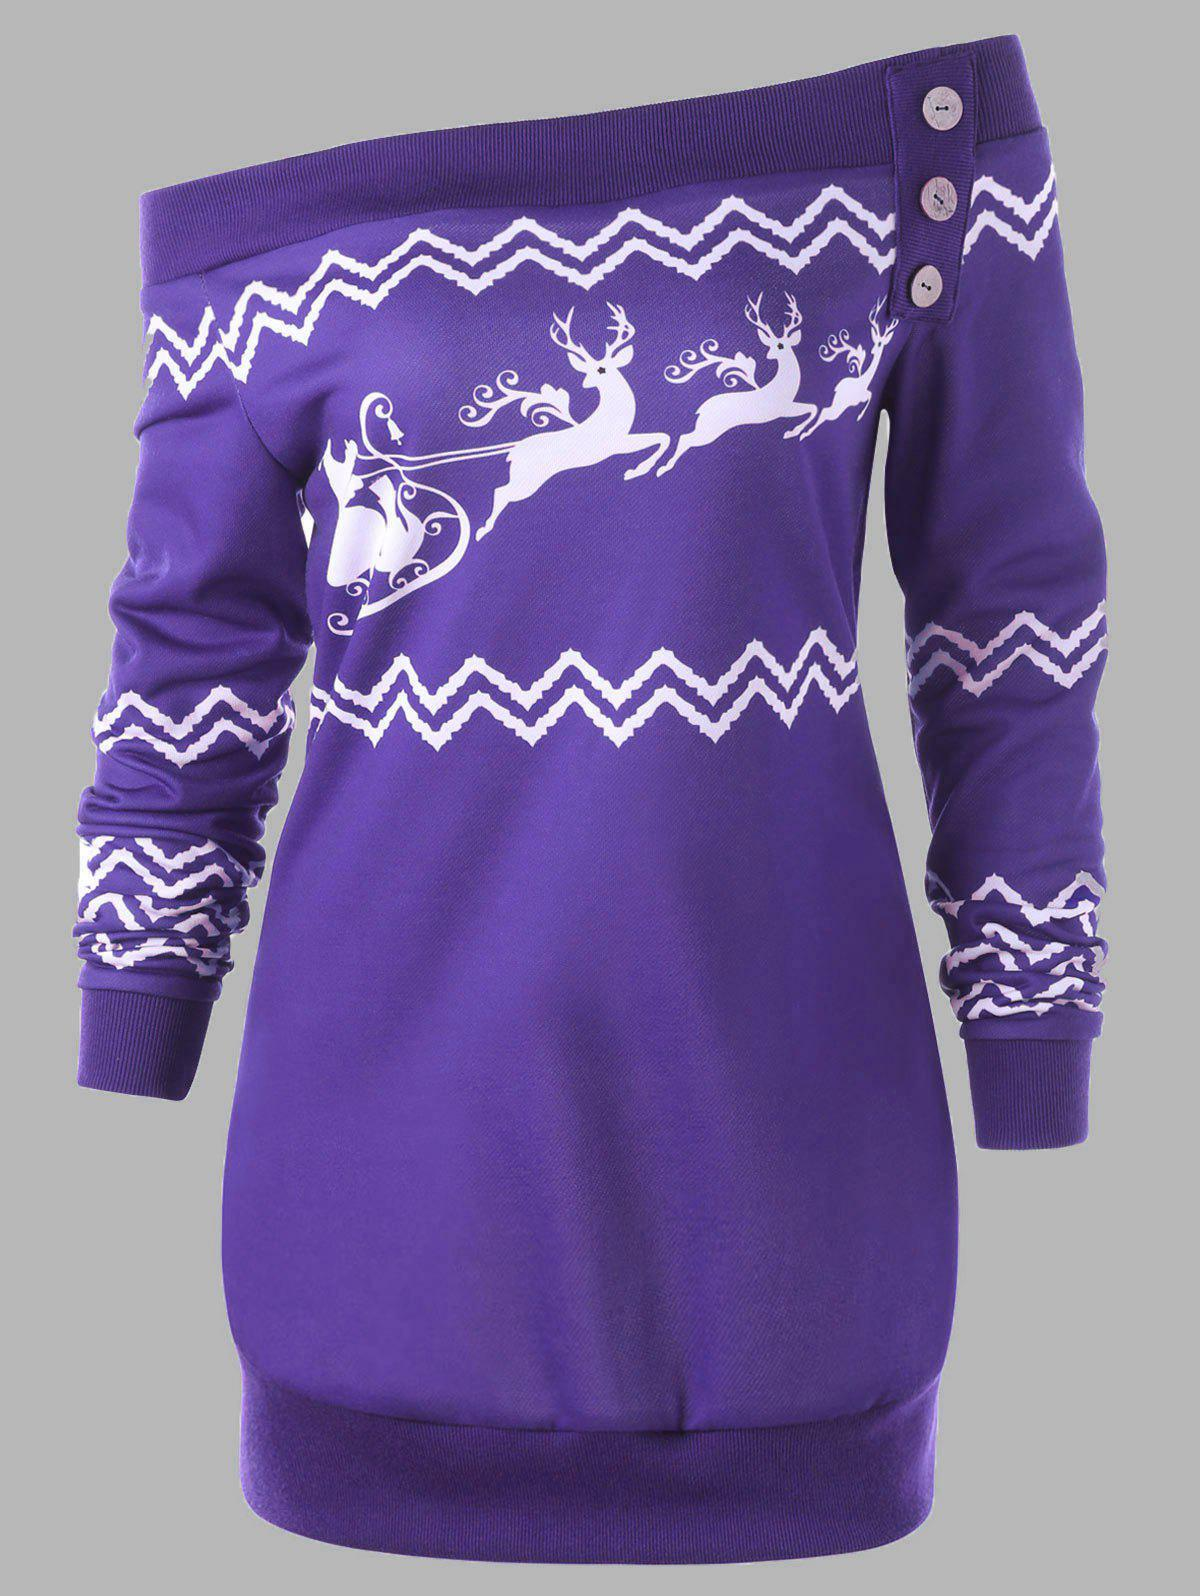 Plus Size Pullover Christmas Zigzag Deer Skew Neck SweatshirtWOMEN<br><br>Size: 4XL; Color: PURPLE; Material: Polyester,Spandex; Shirt Length: Long; Sleeve Length: Full; Style: Casual; Pattern Style: Character,Zig Zag(Chevron); Embellishment: Button; Season: Fall,Spring,Winter; Weight: 0.3500kg; Package Contents: 1 x Sweatshirt;